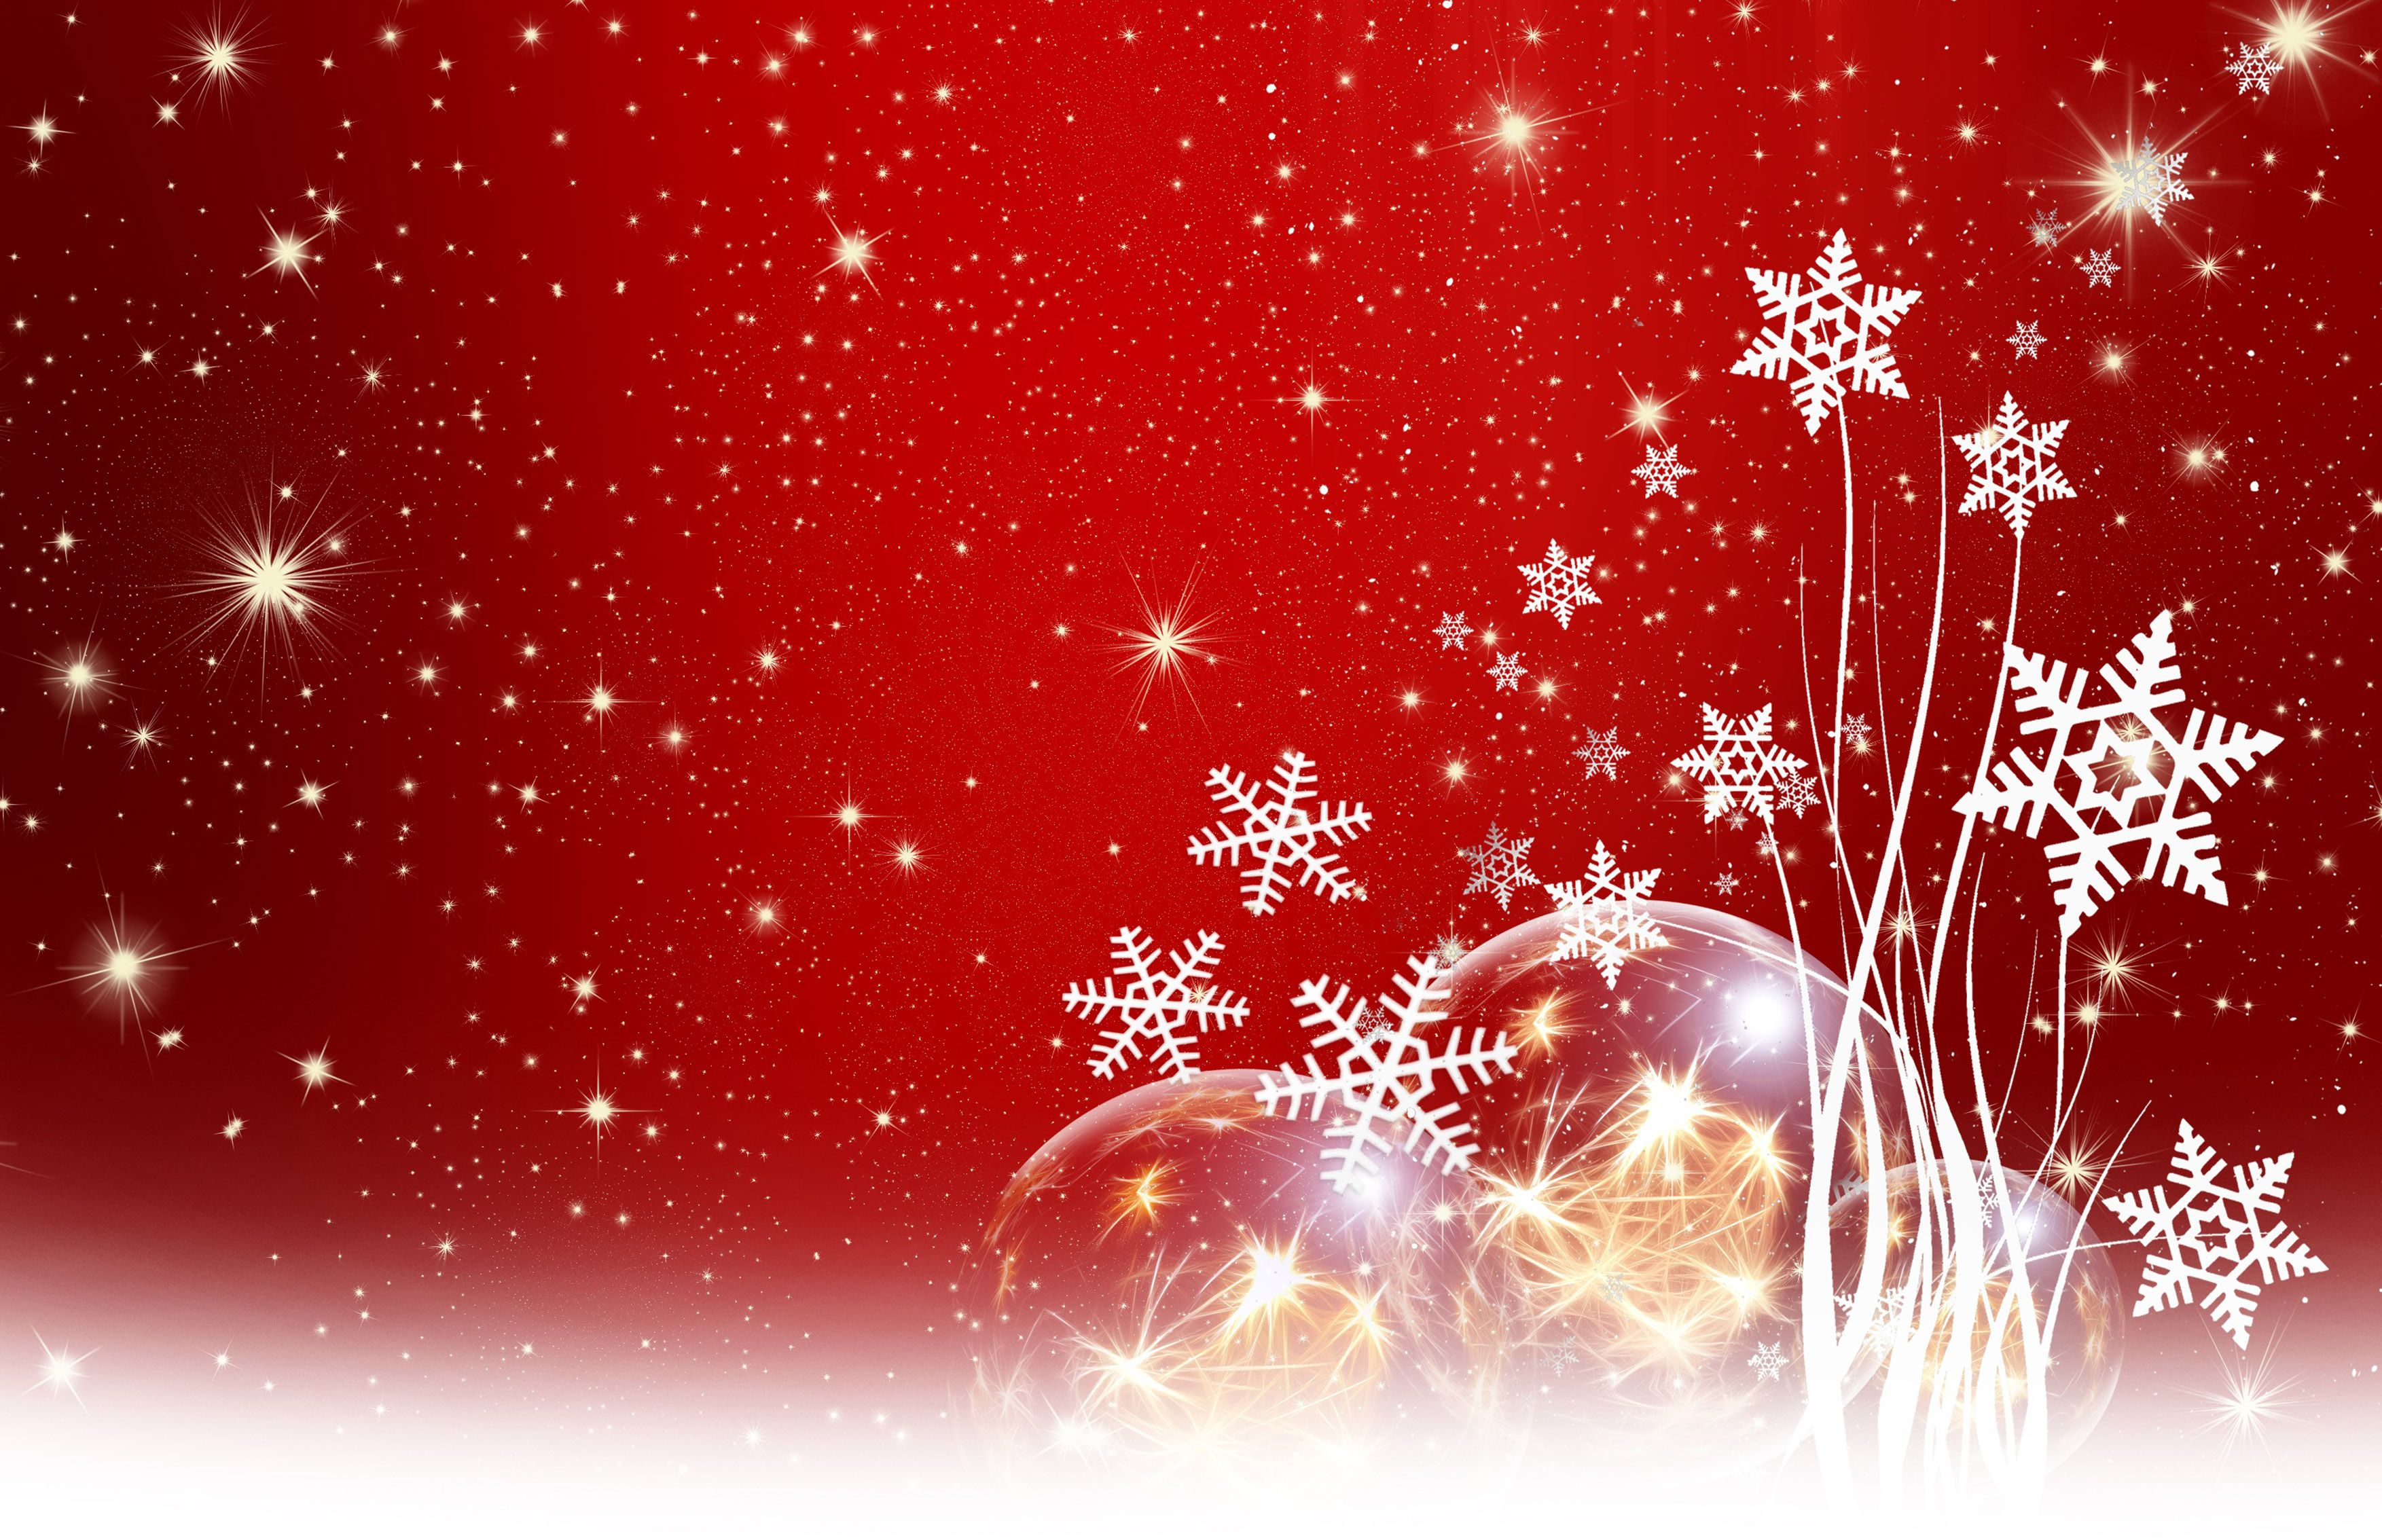 50 Great Free Pictures for Christmas Wallpaper, Background